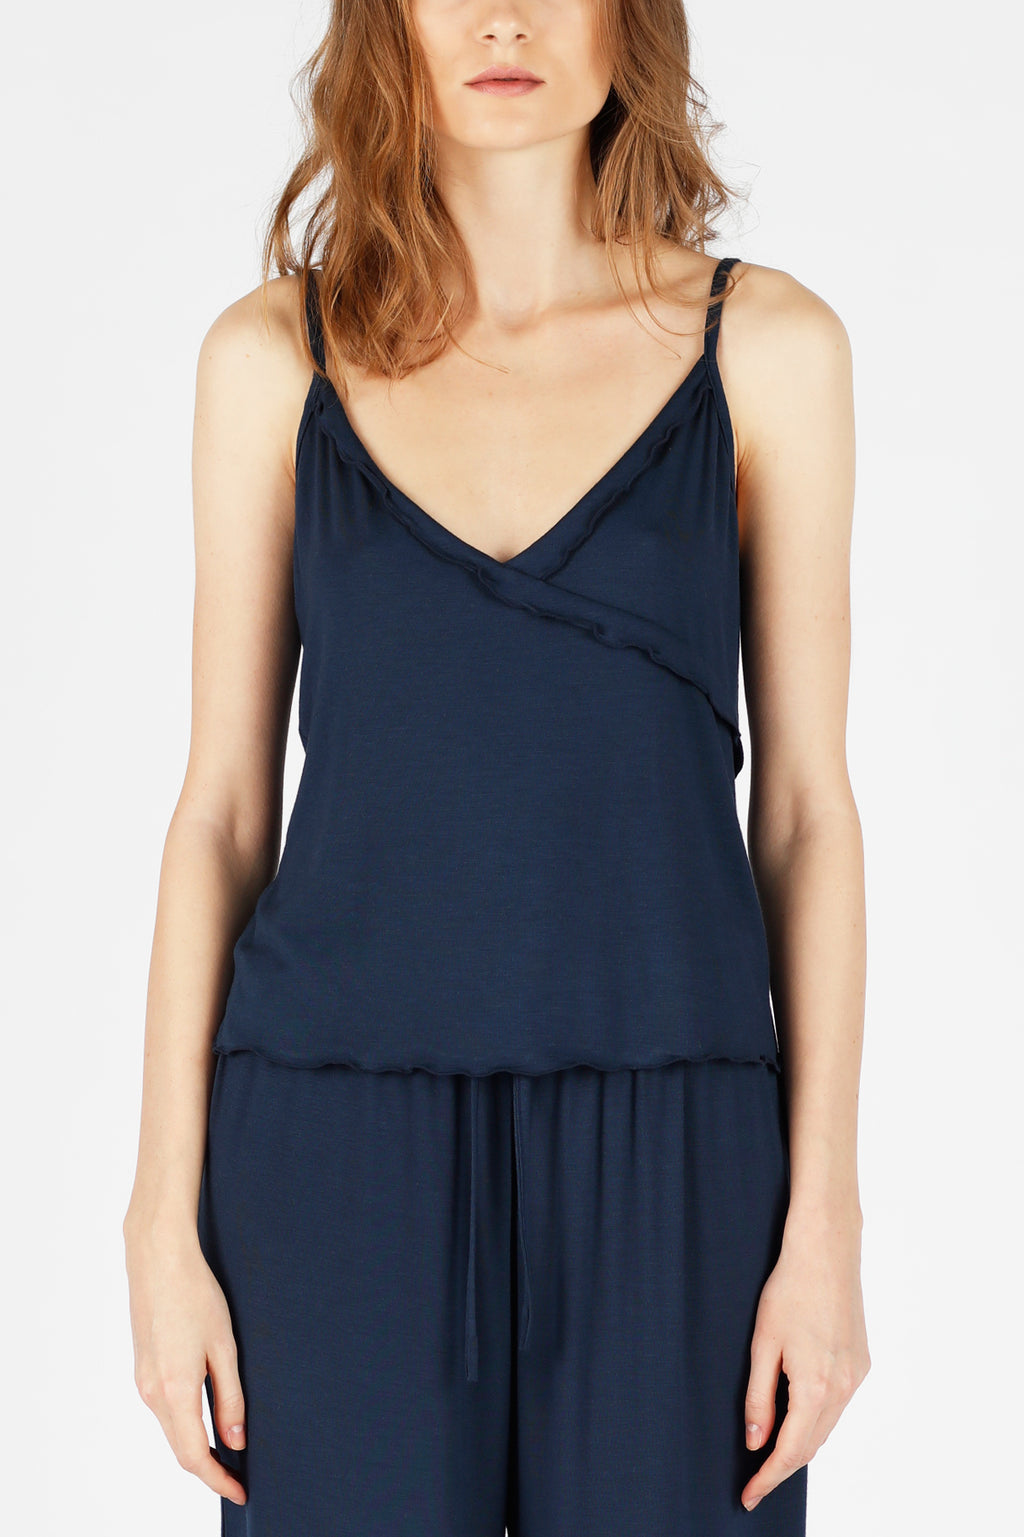 All-Day-Chic PJ Top - Navy Blue